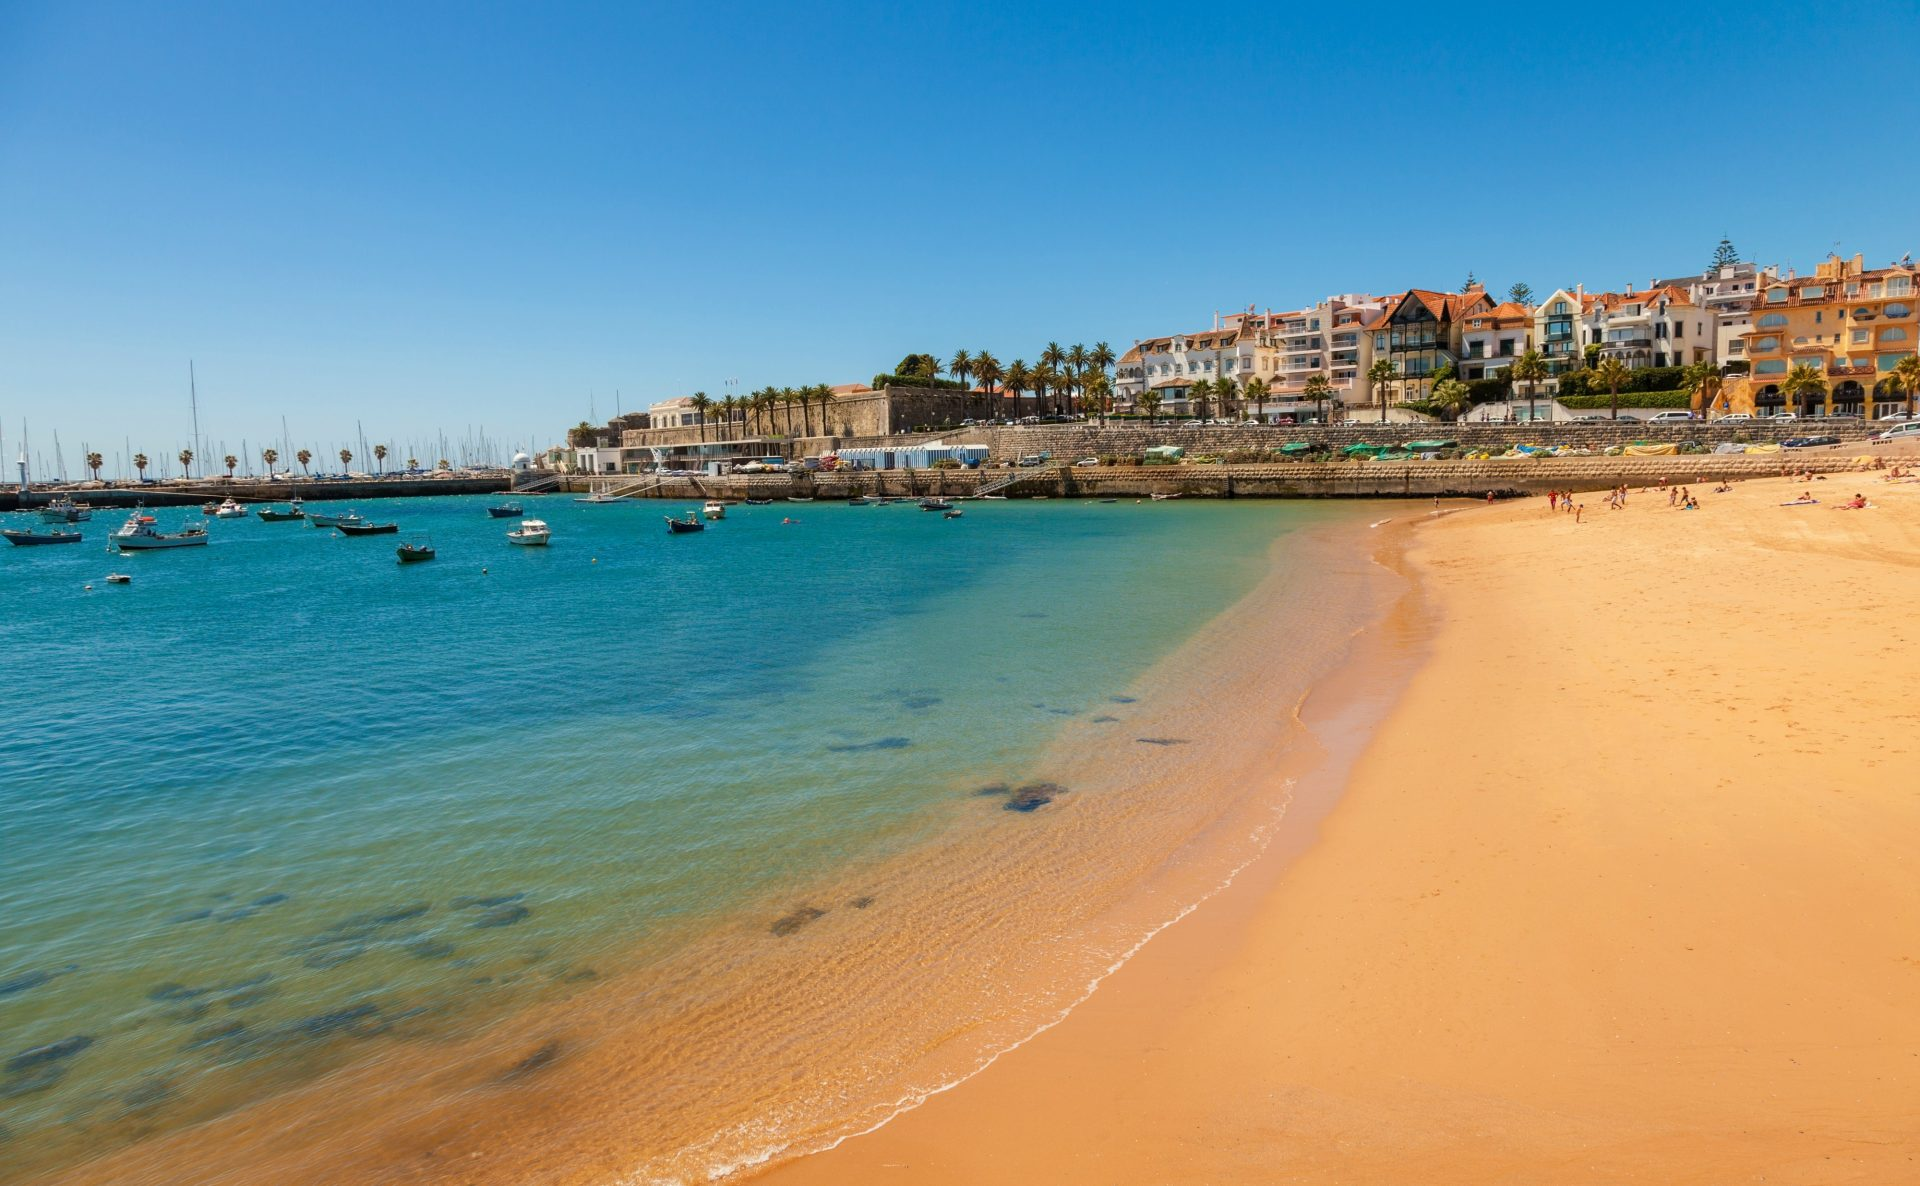 Tourism in Portugal: 2015 roundup